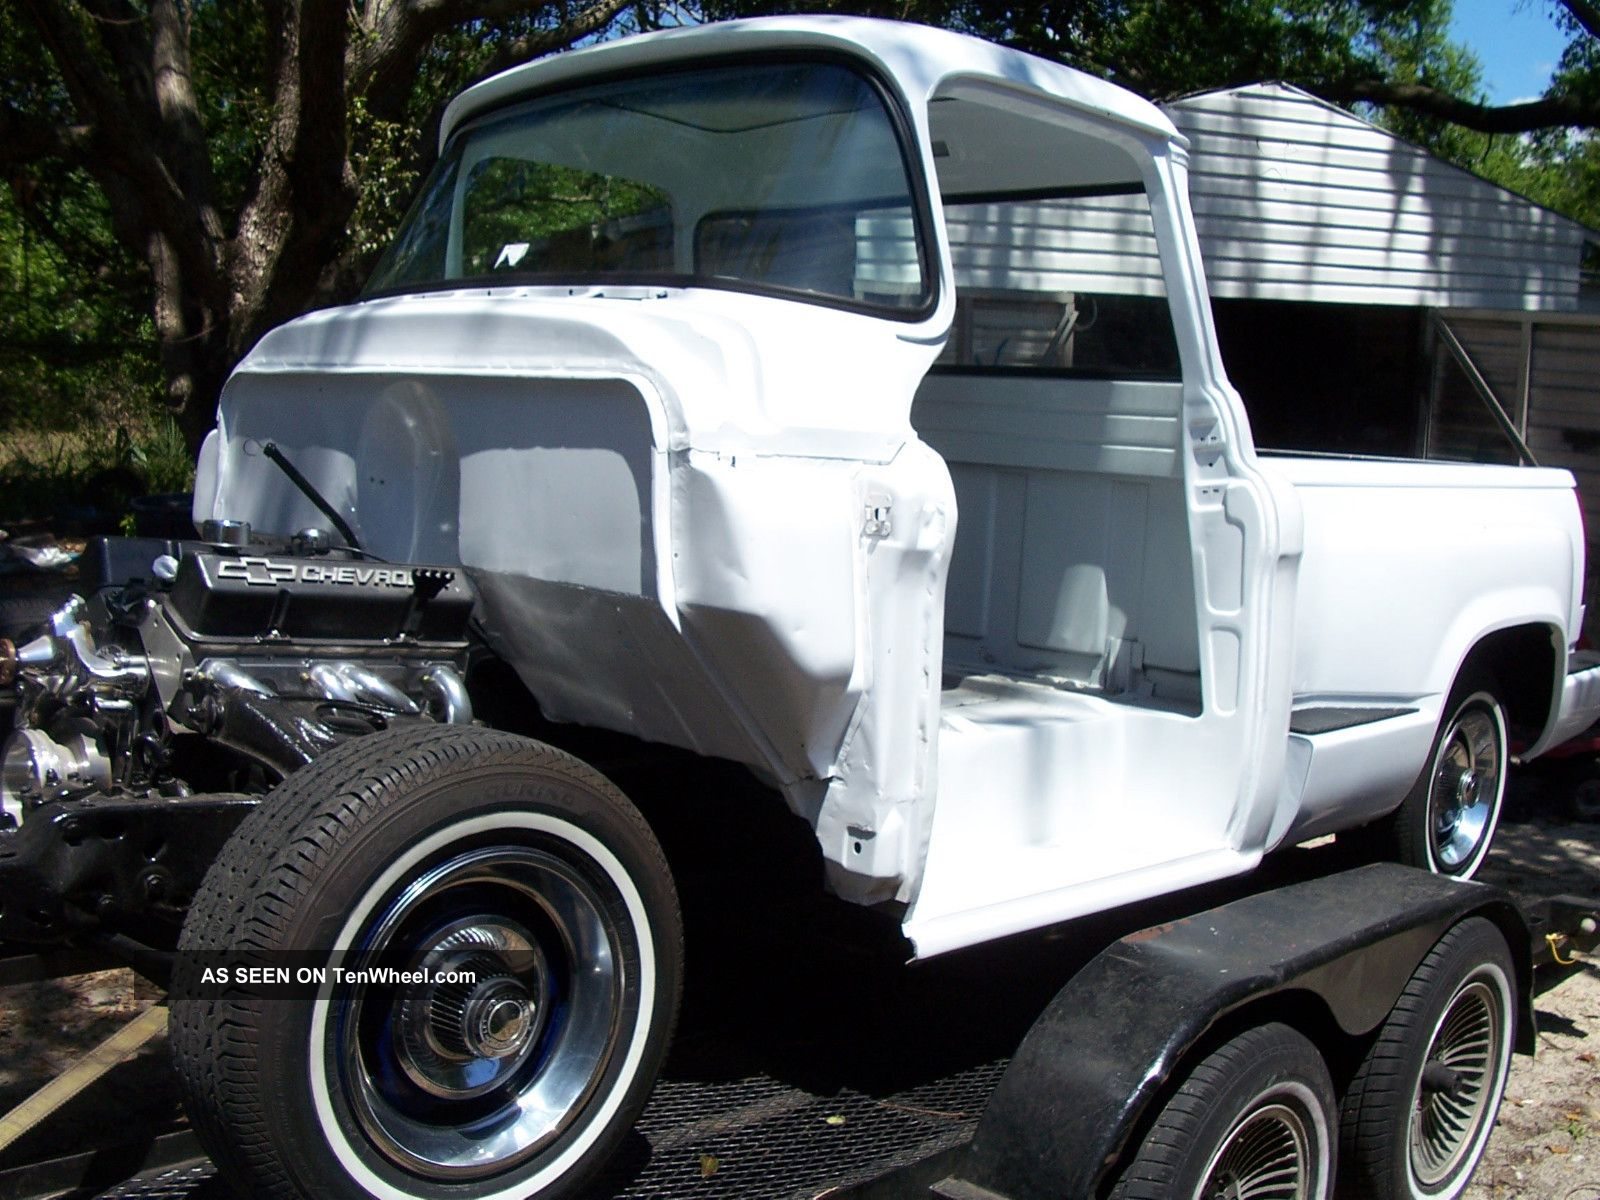 1956 Gmc / Chevy Bigwindow Short Wheel Base Project. Other photo